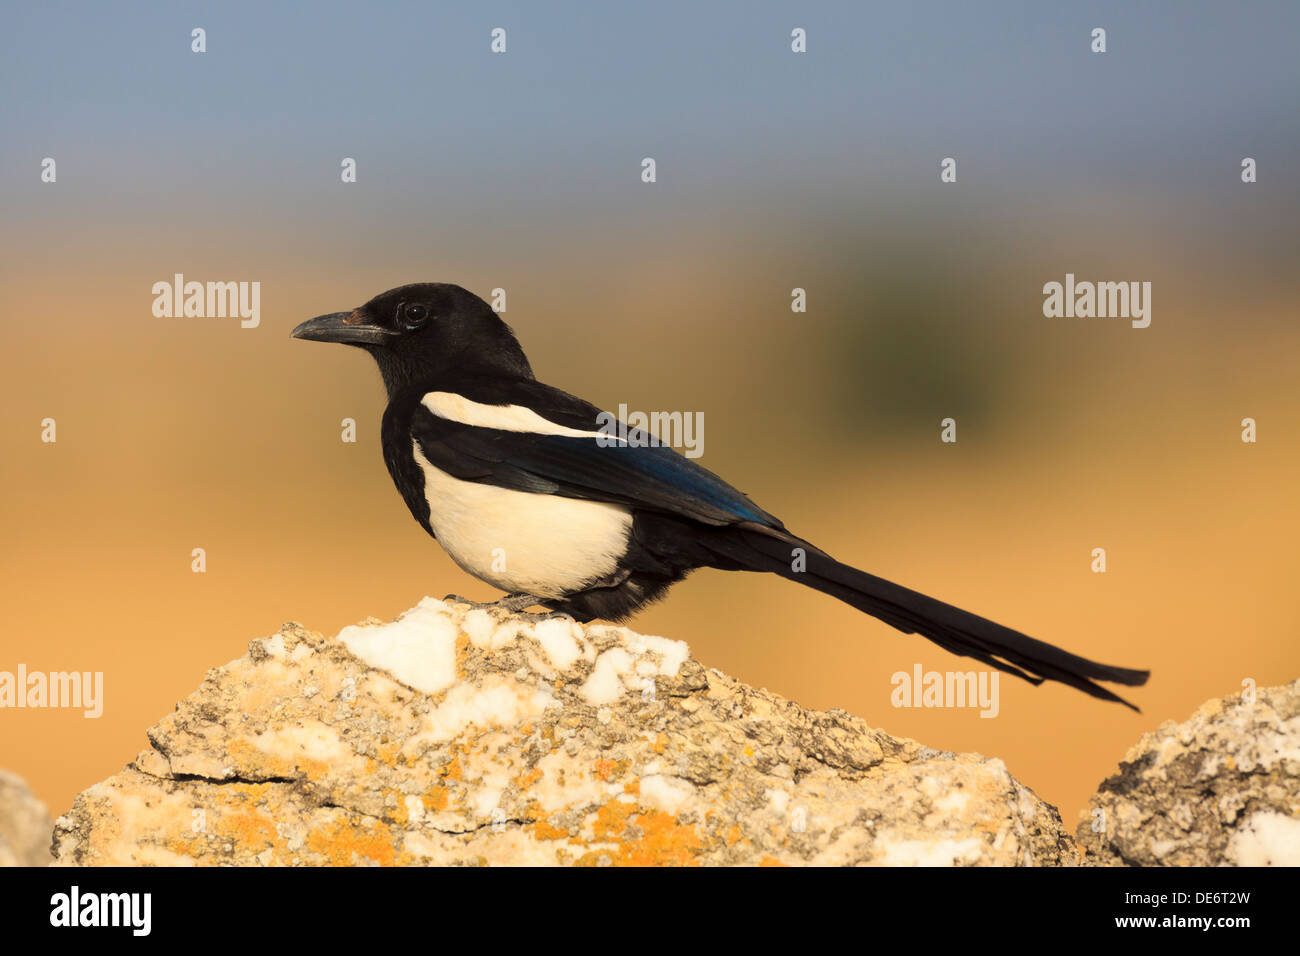 Common Magpie (Pica pica) perched on a top of a stone. Lleida. Catalonia. Spain. Stock Photo